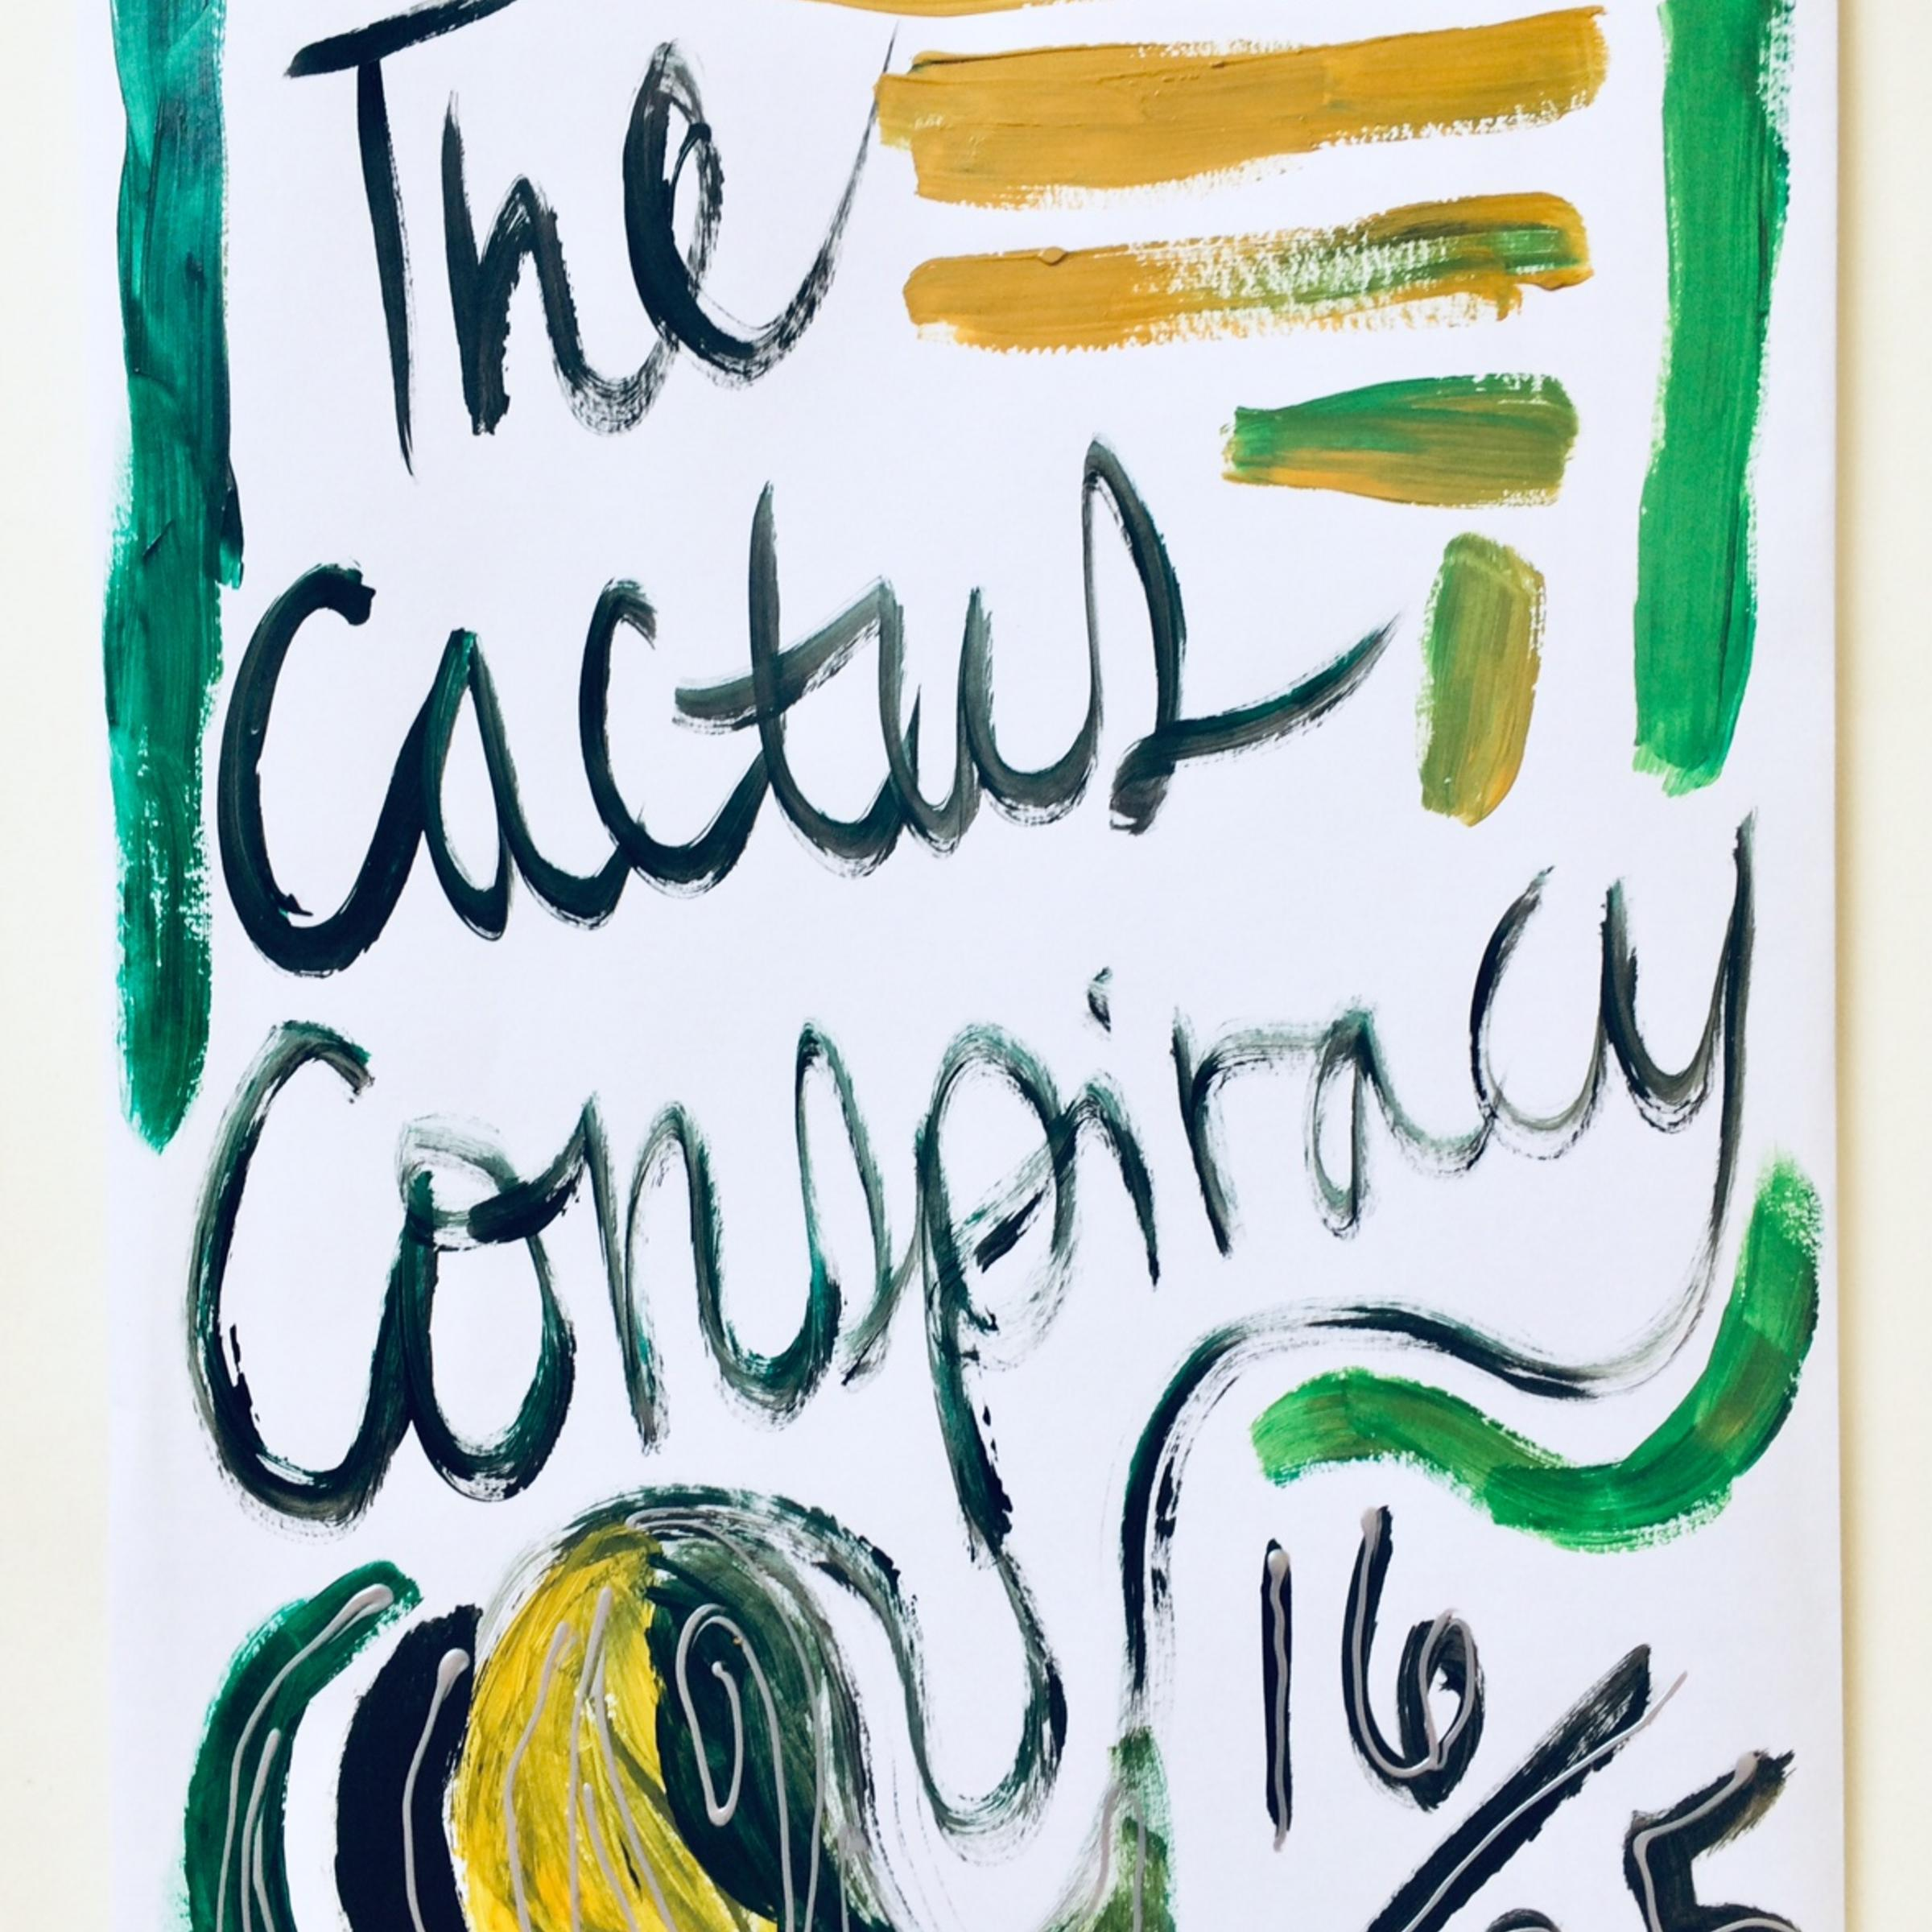 The hand-painted envelope front-cover that says: The Cactus Conspiracy